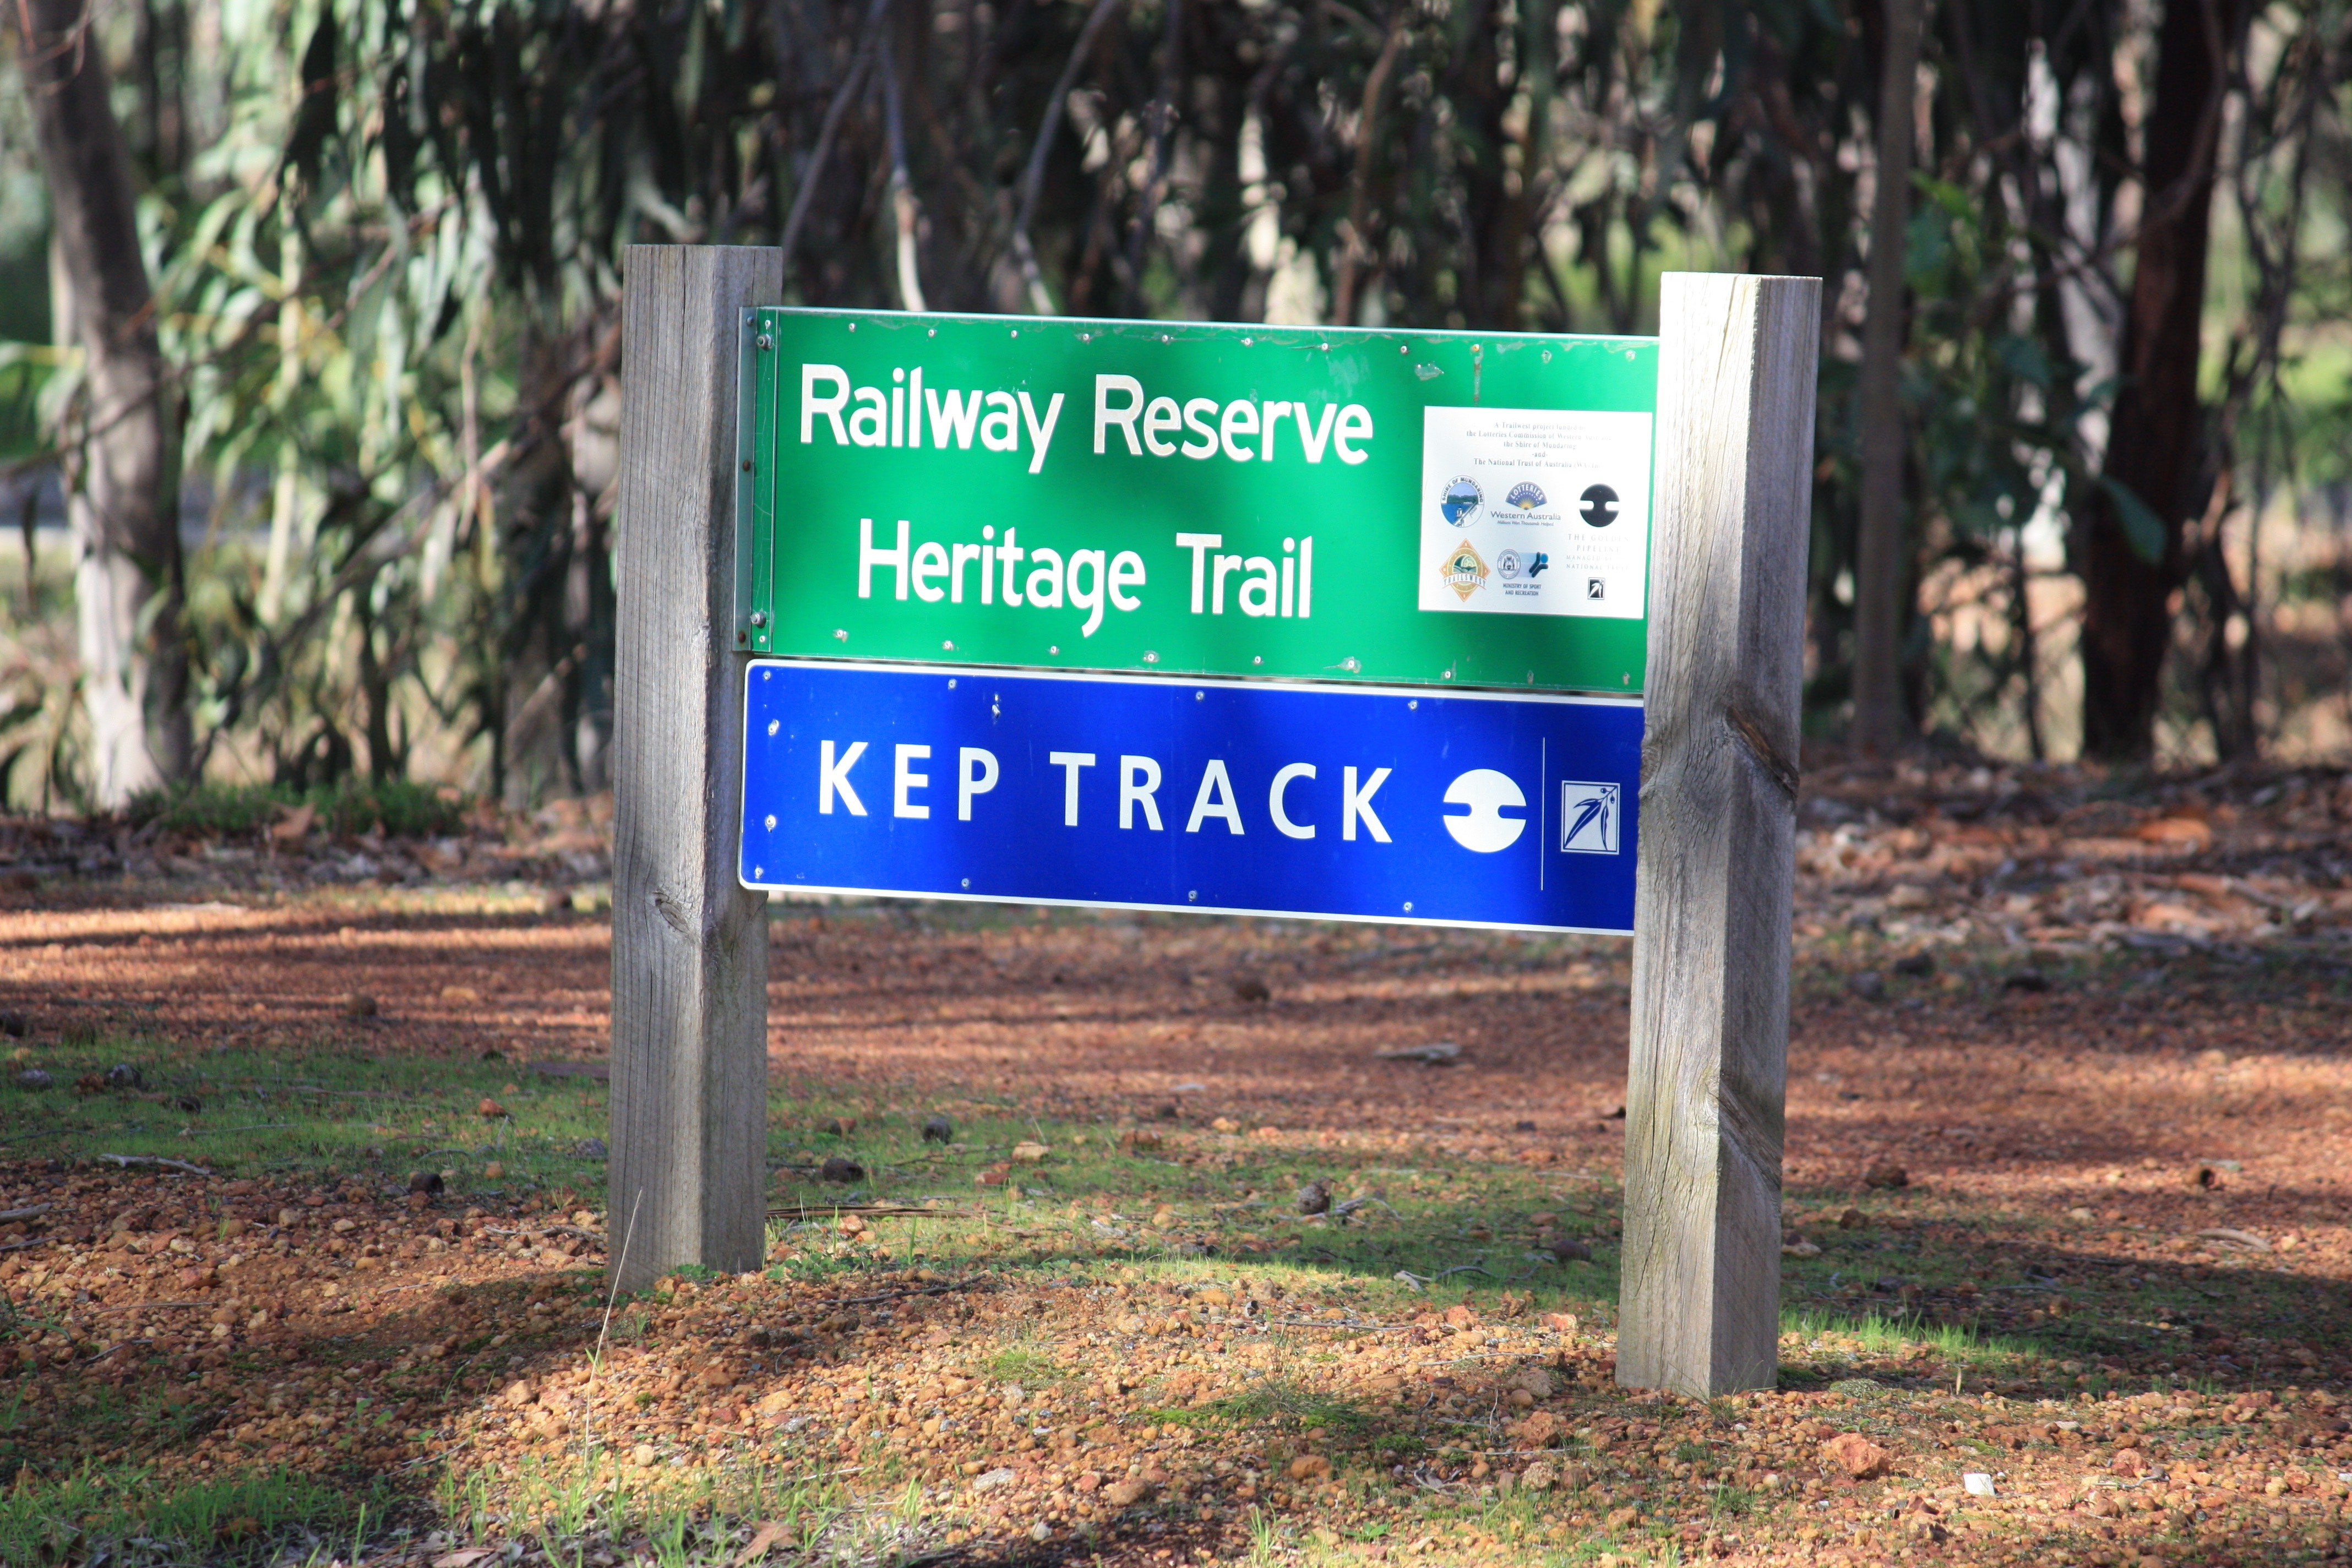 The Kep joins the Railway Heritage Trail